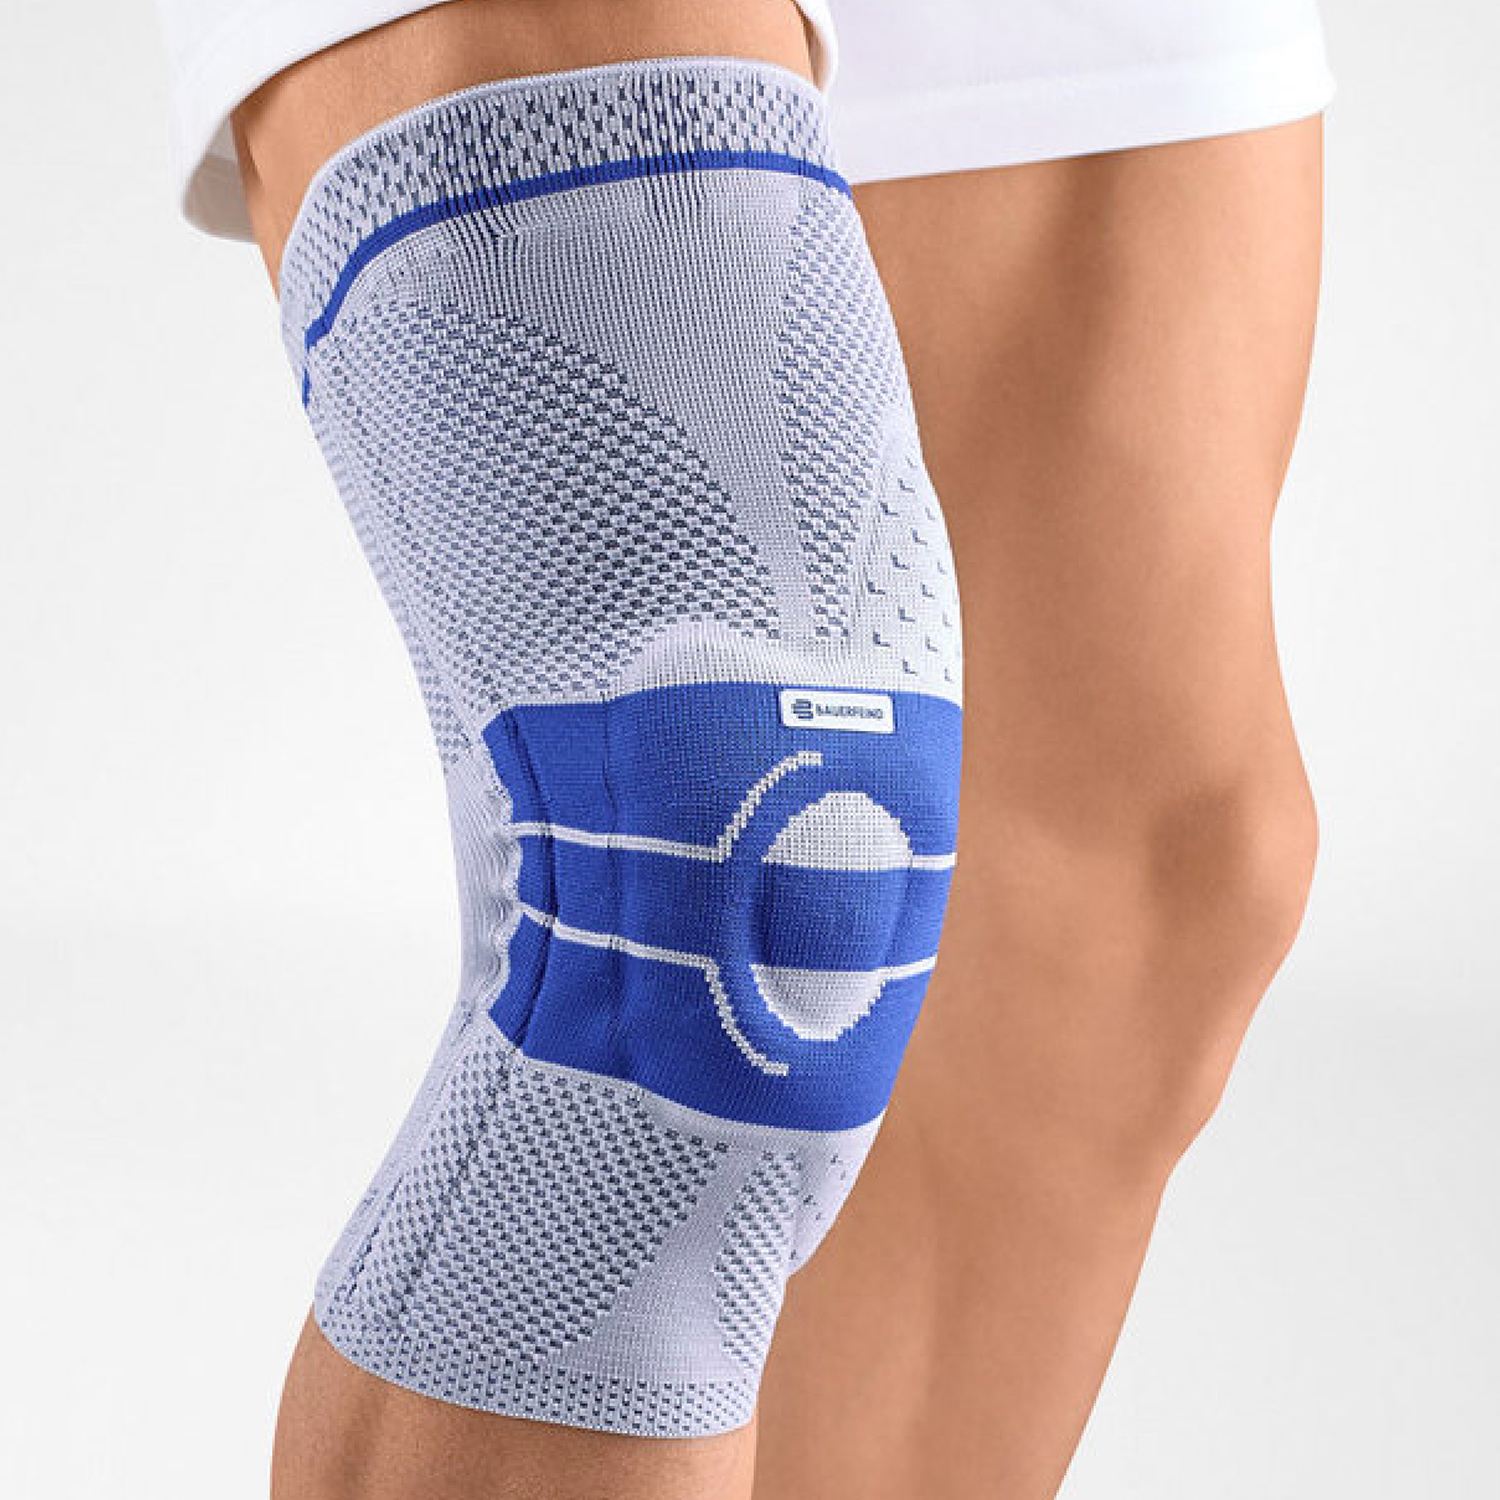 The  GenuTrain A3  knee braces and supports are designed especially for active seniors who need support for degenerative knee pain related to osteoarthritis.